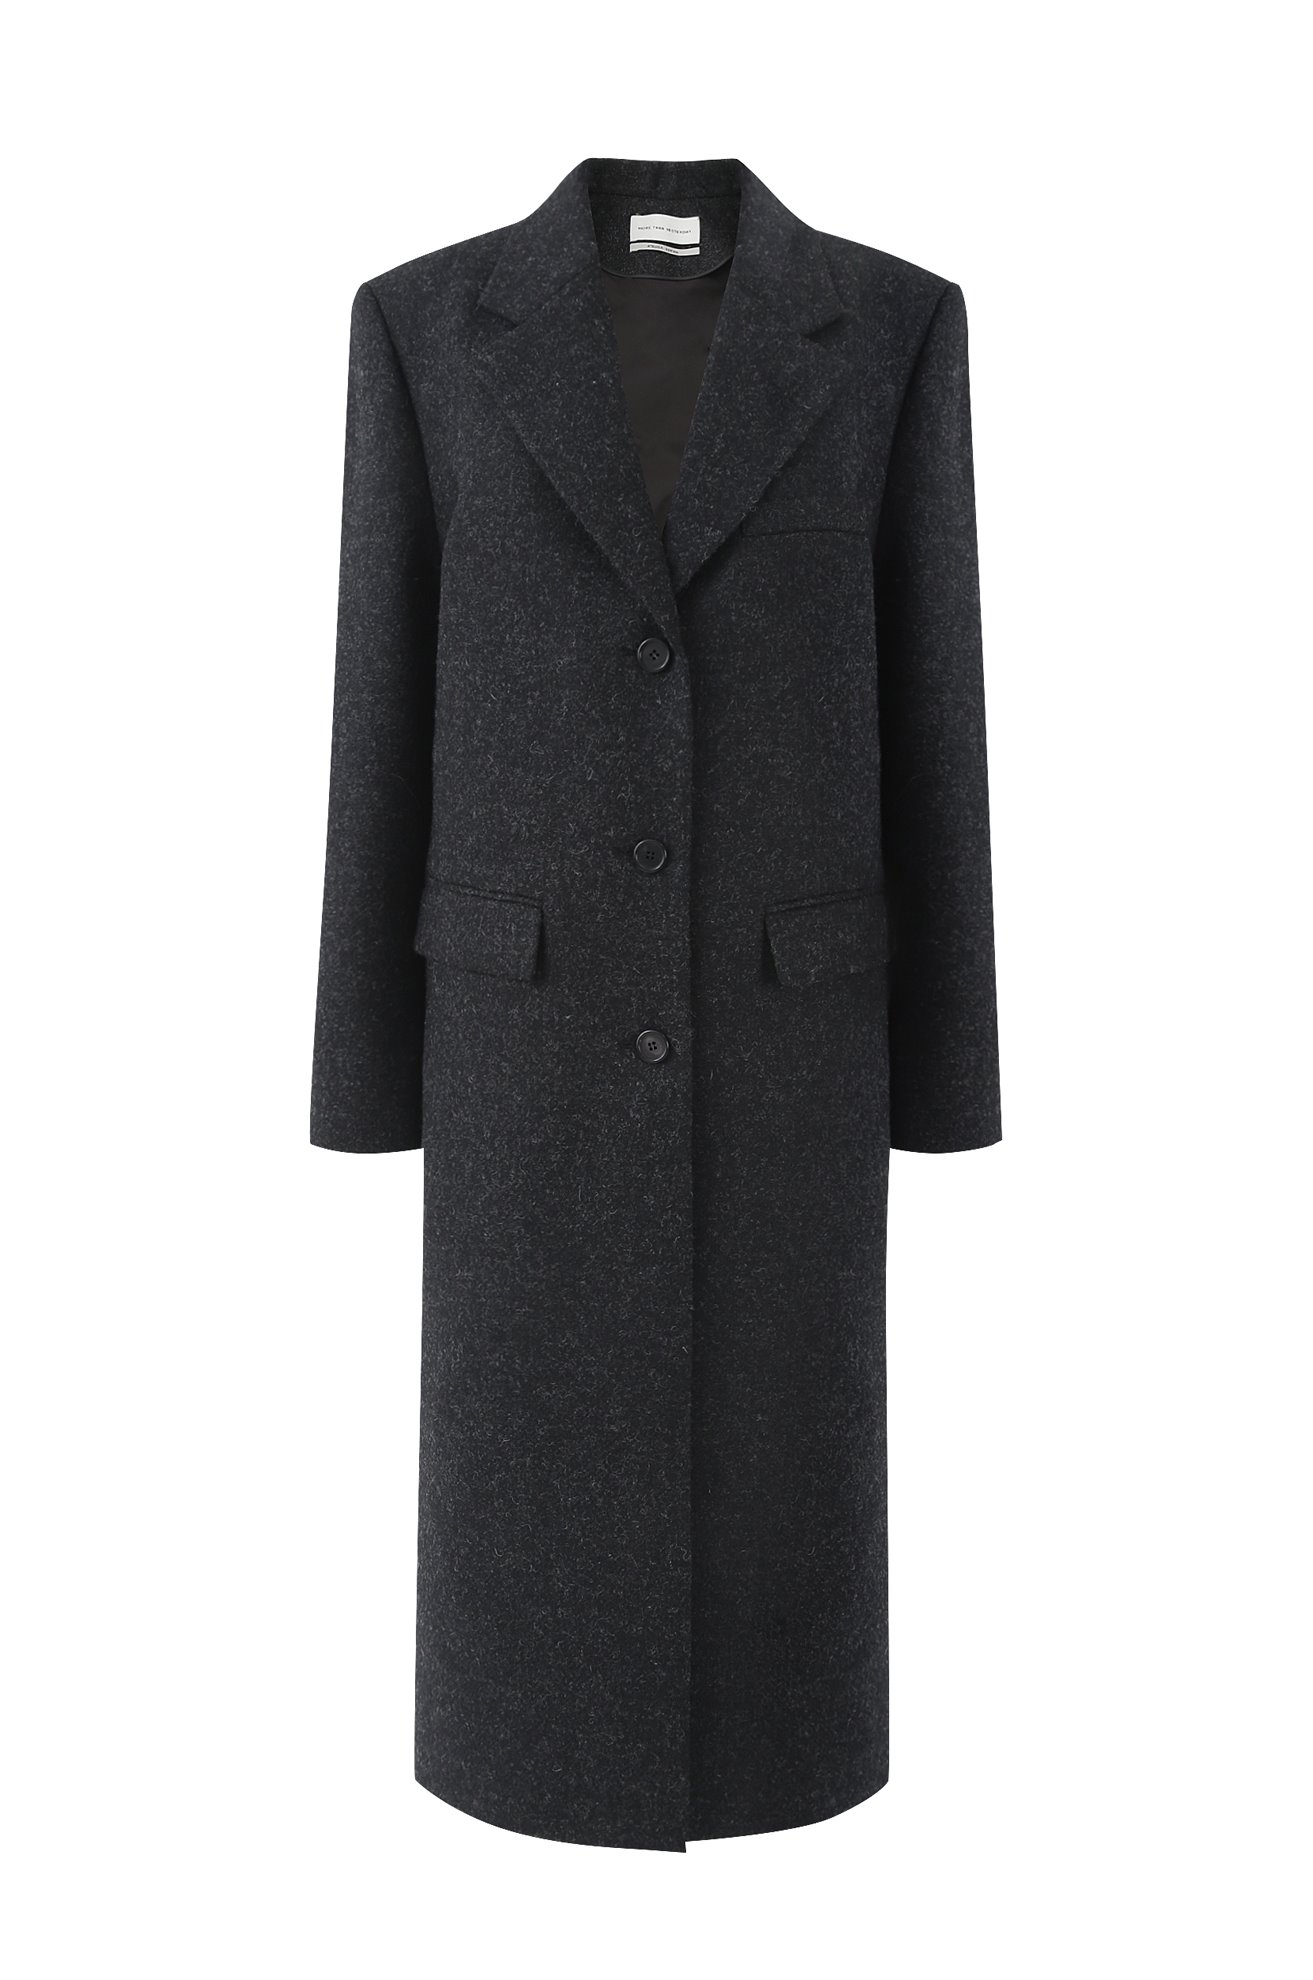 British Wool Coat with Detachable Duck Down Vest (BLACK)ATELIER EDITION